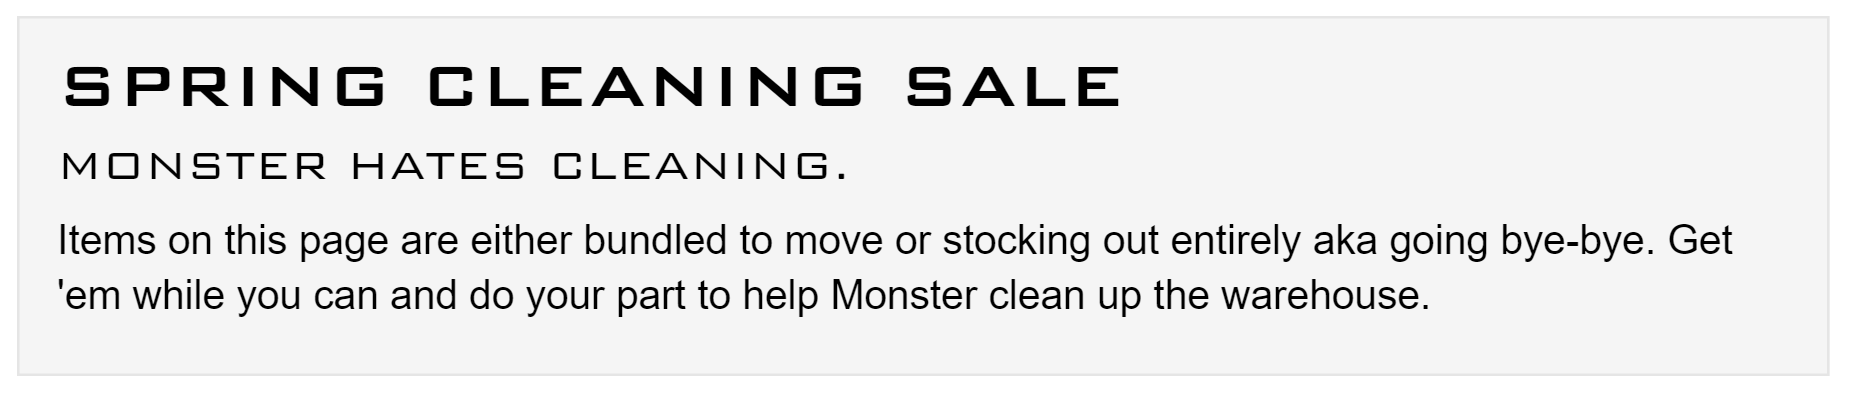 goruck-spring-cleaning-sale-2016-text